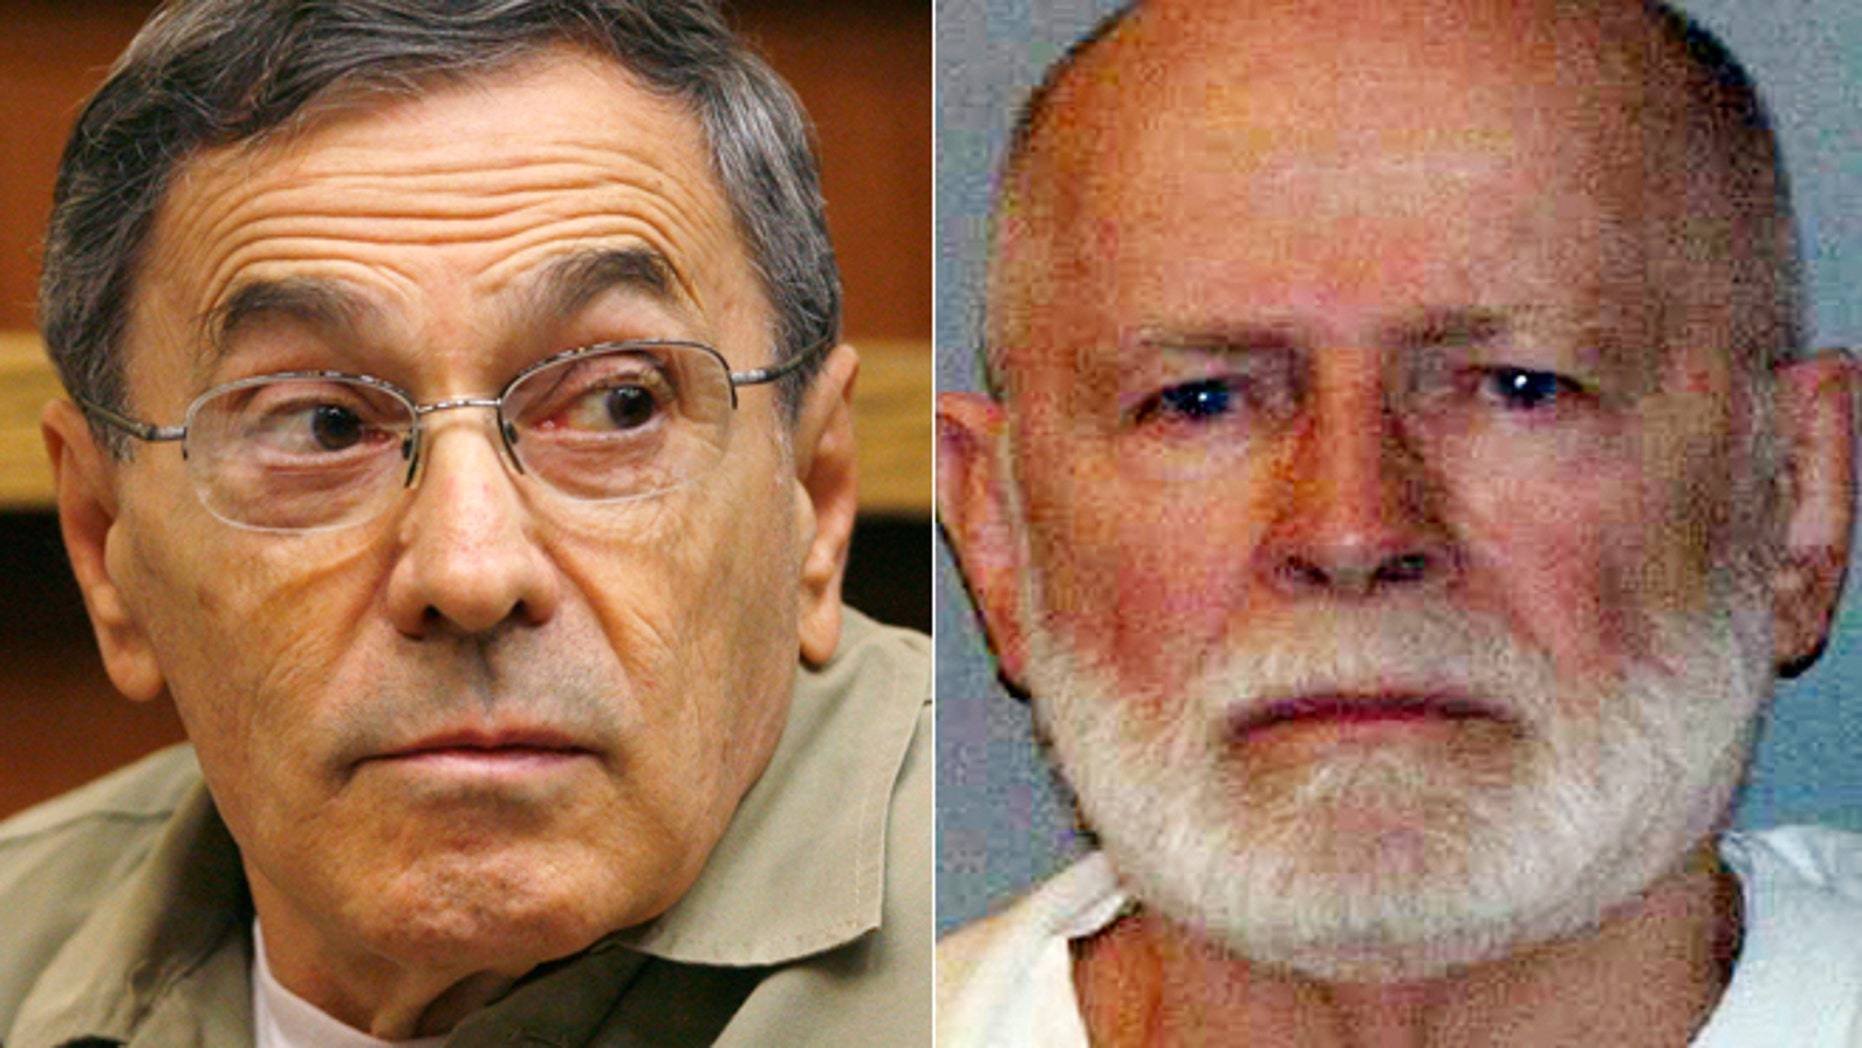 """This pair of file photos shows Stephen """"The Rifleman"""" Flemmi, left, on Sept. 22, 2008, as he testified in a Miami court in the murder trial of former FBI agent John Connolly; and James """"Whitey"""" Bulger, right, in a June 23, 2011 booking photo provided by the U.S. Marshals Service."""